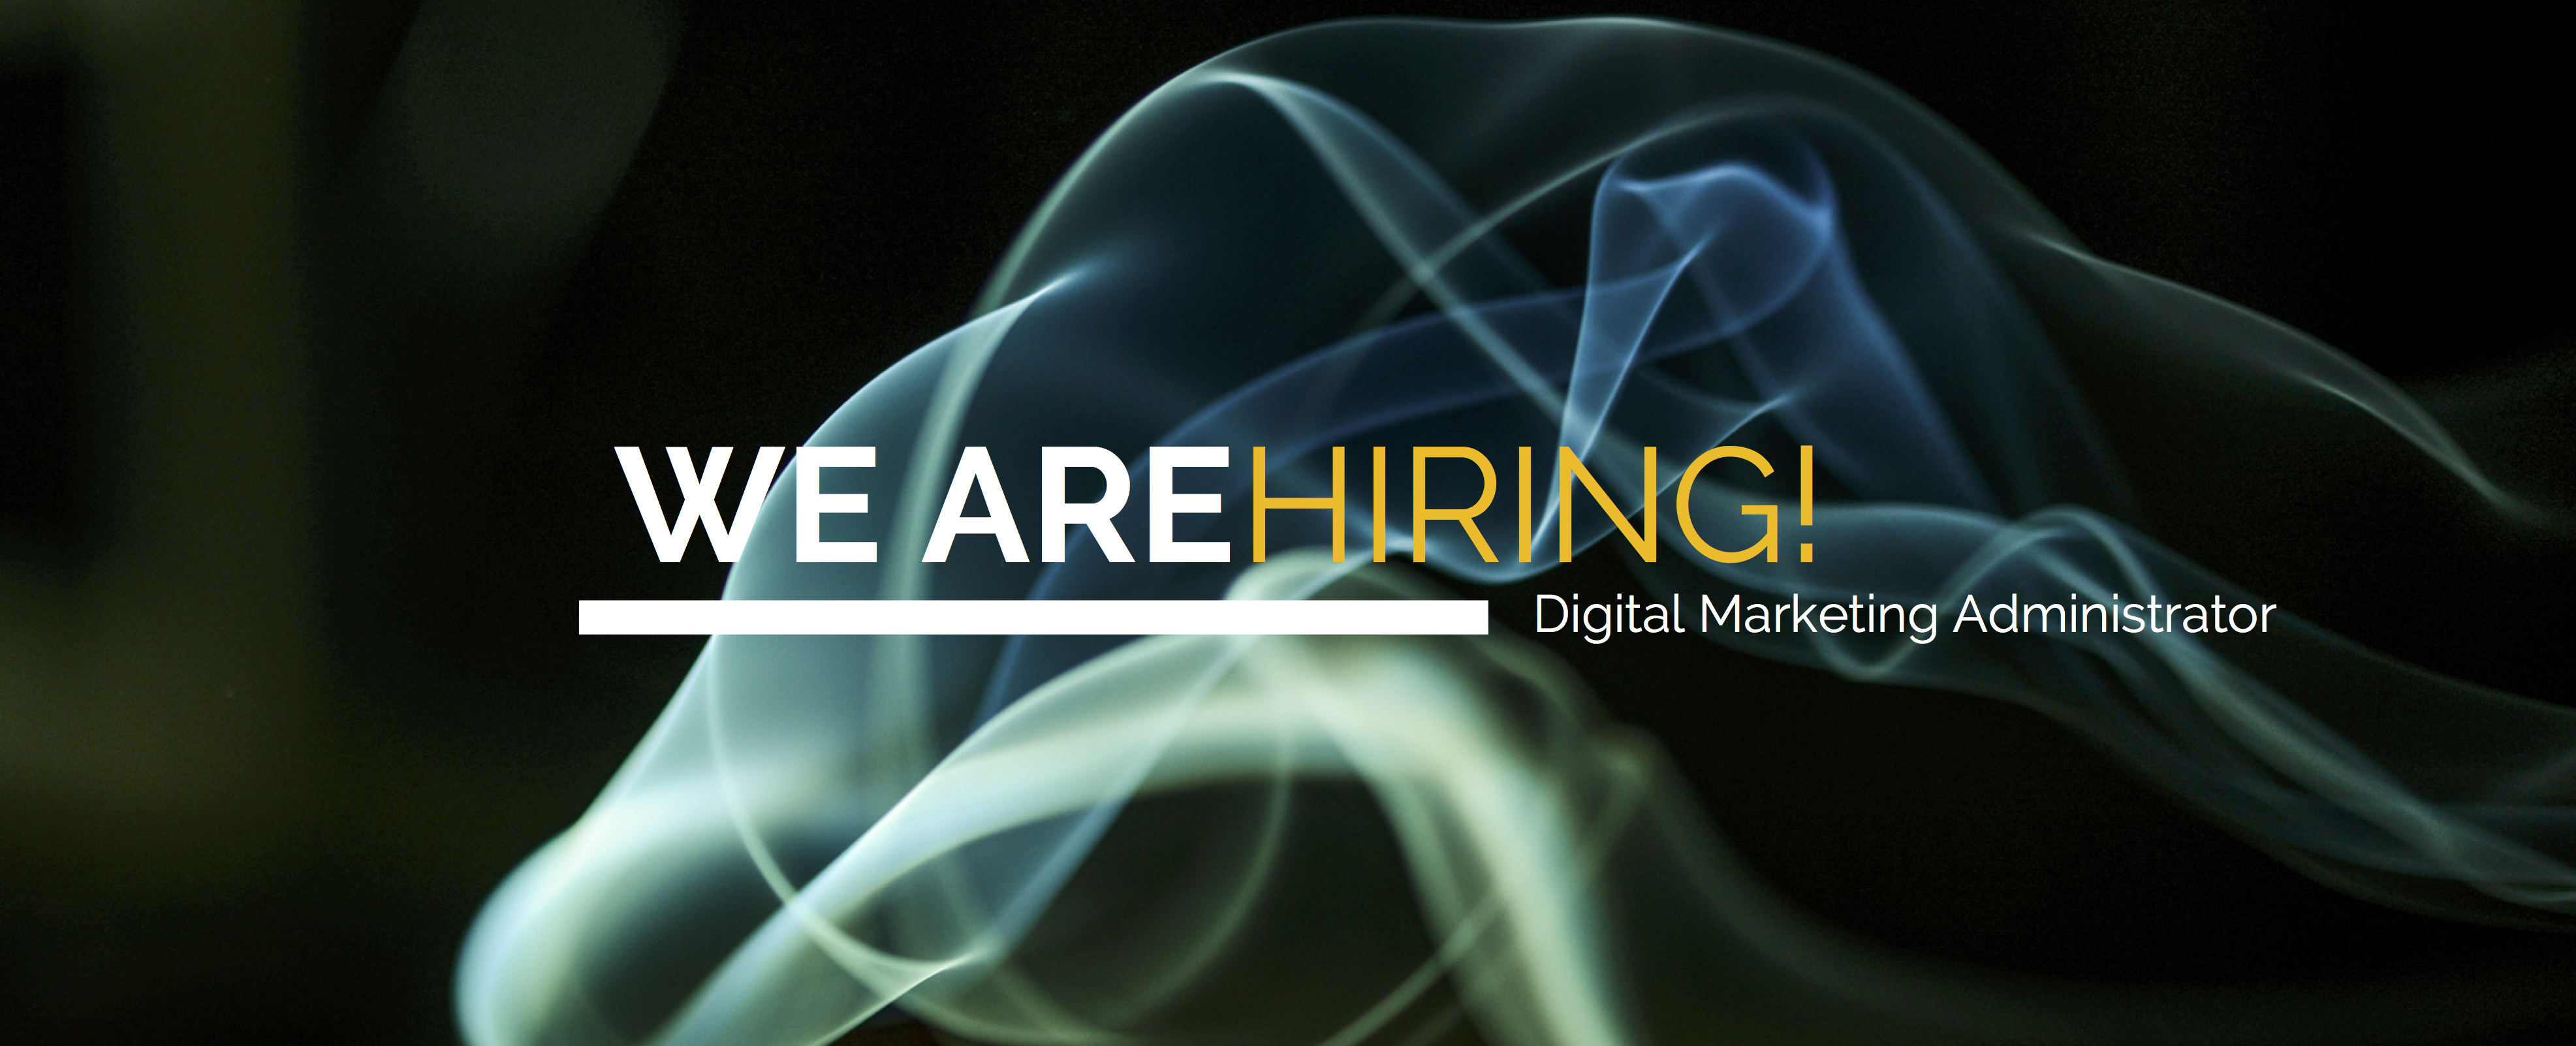 DIGITAL MARKETING JOB DIGITAL 24 NI